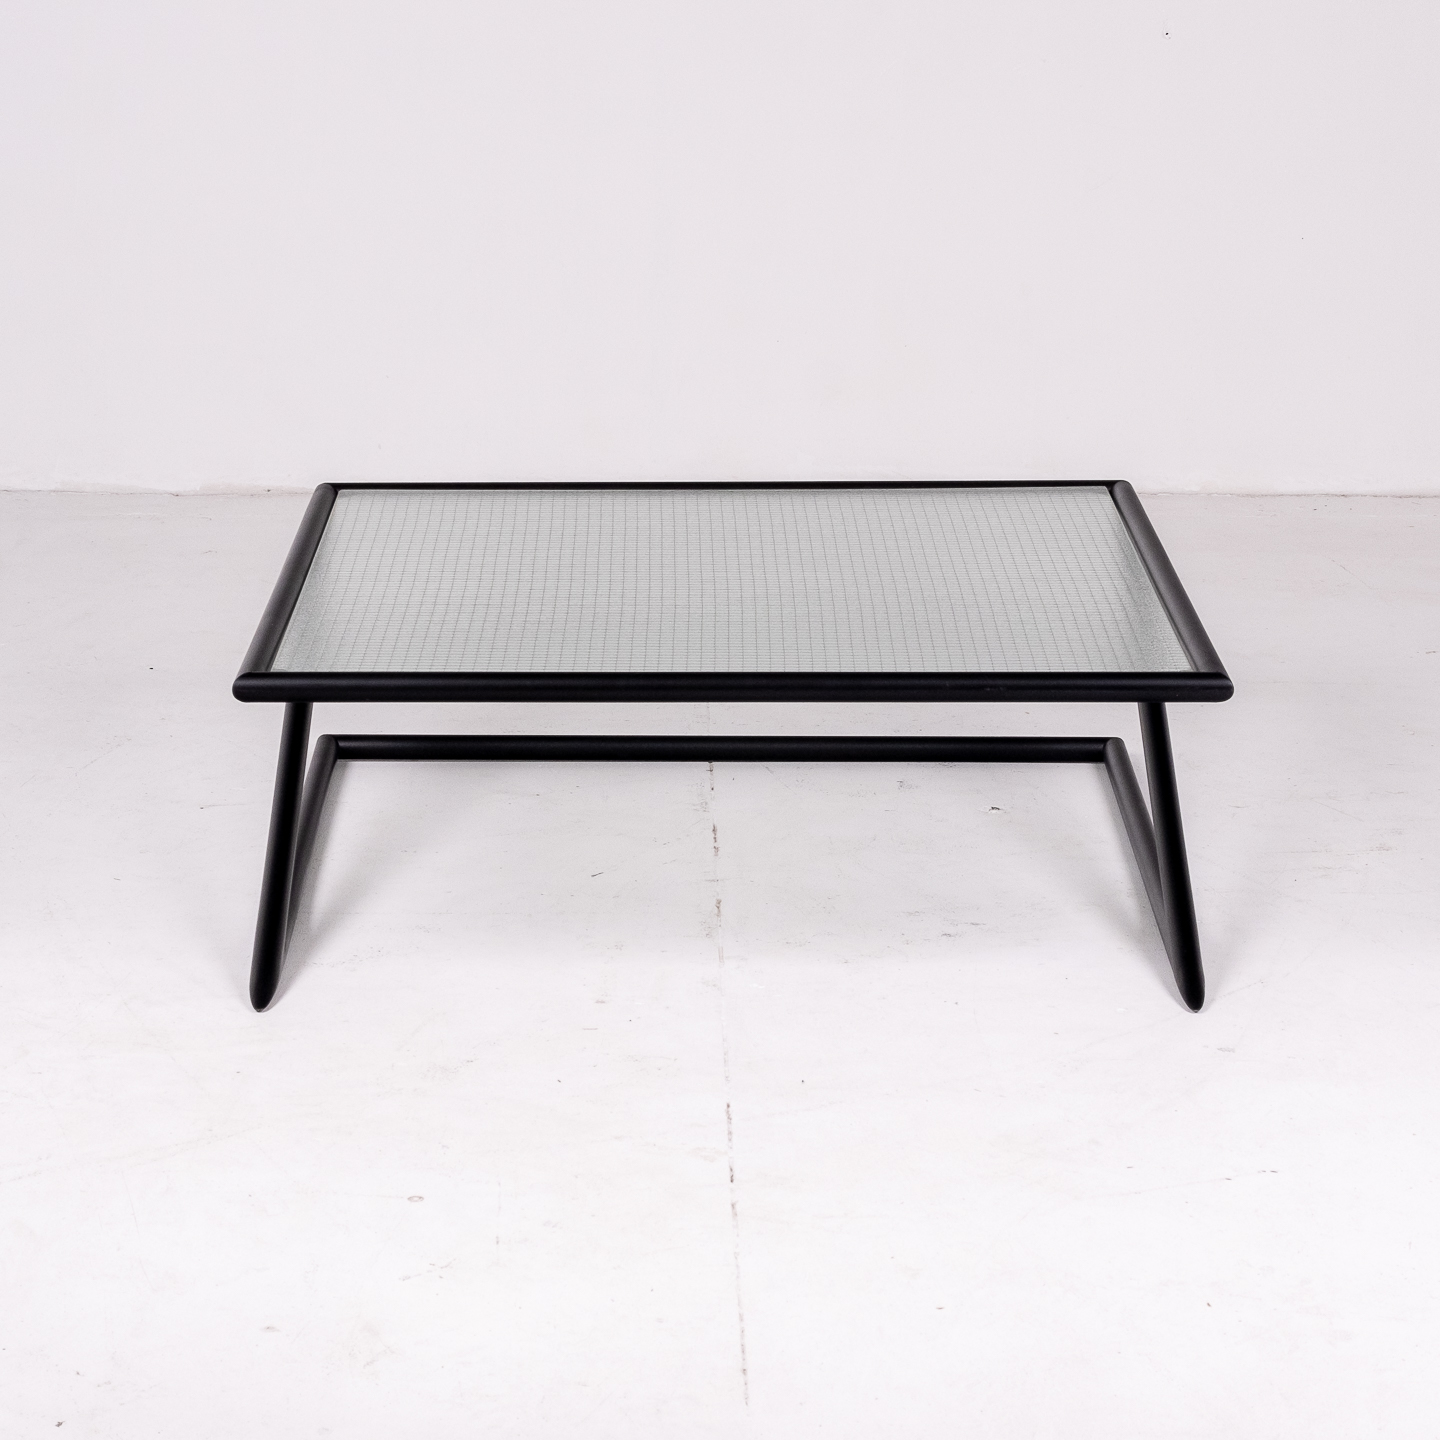 'z' Coffee Table By Harvink, 1980s, The Netherlands 30